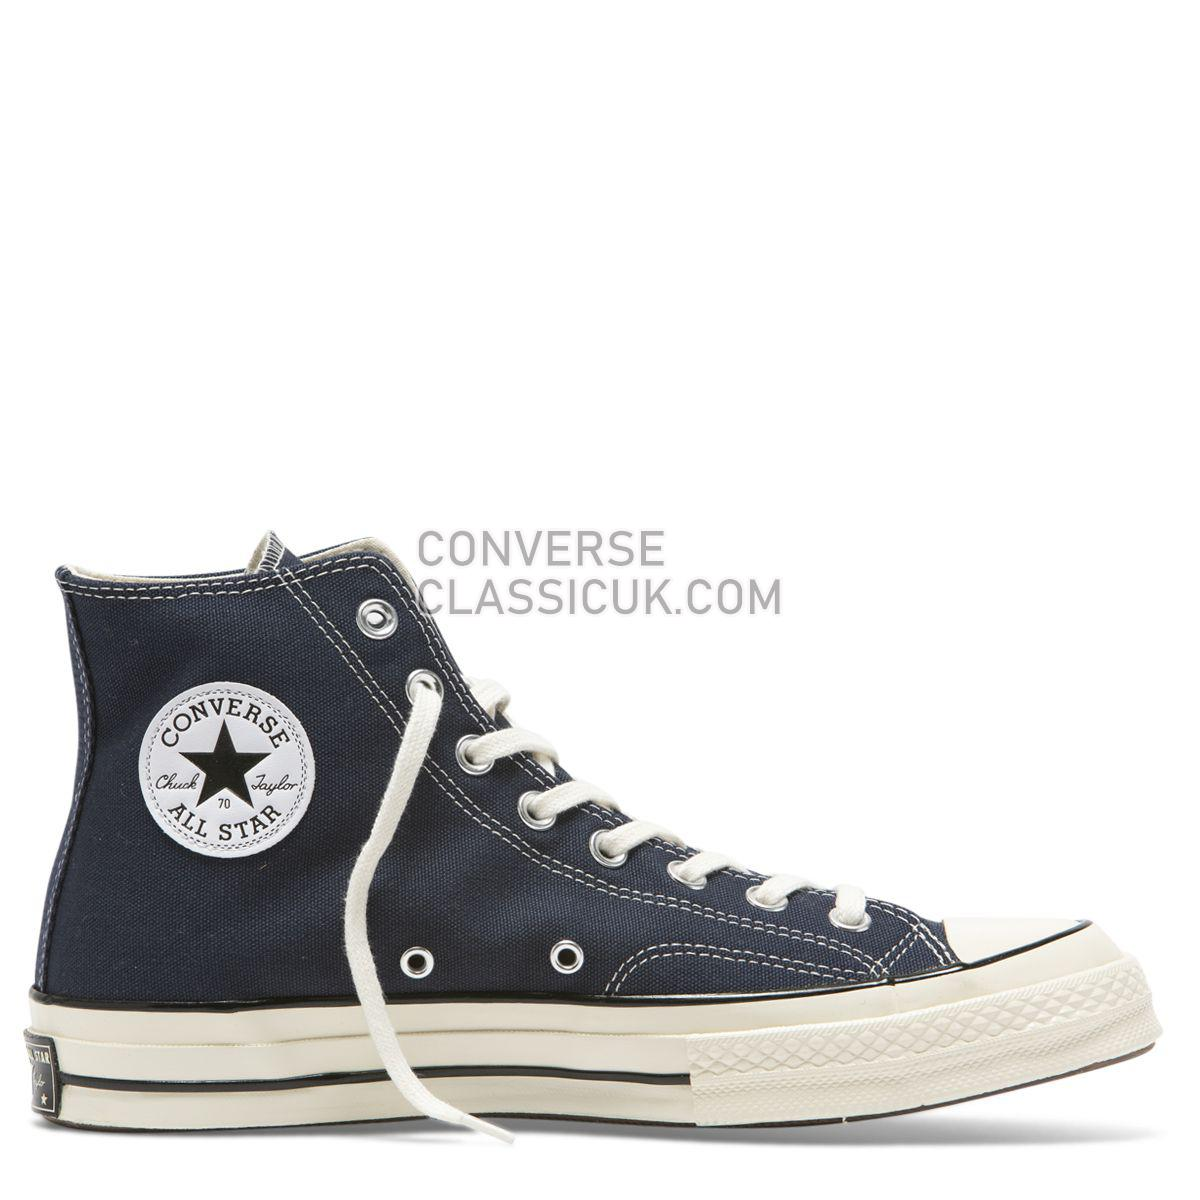 Converse Chuck Taylor All Star 70 Always On High Top Obsidian Mens Womens Unisex 164945 Obsidian/Egret/Black Shoes